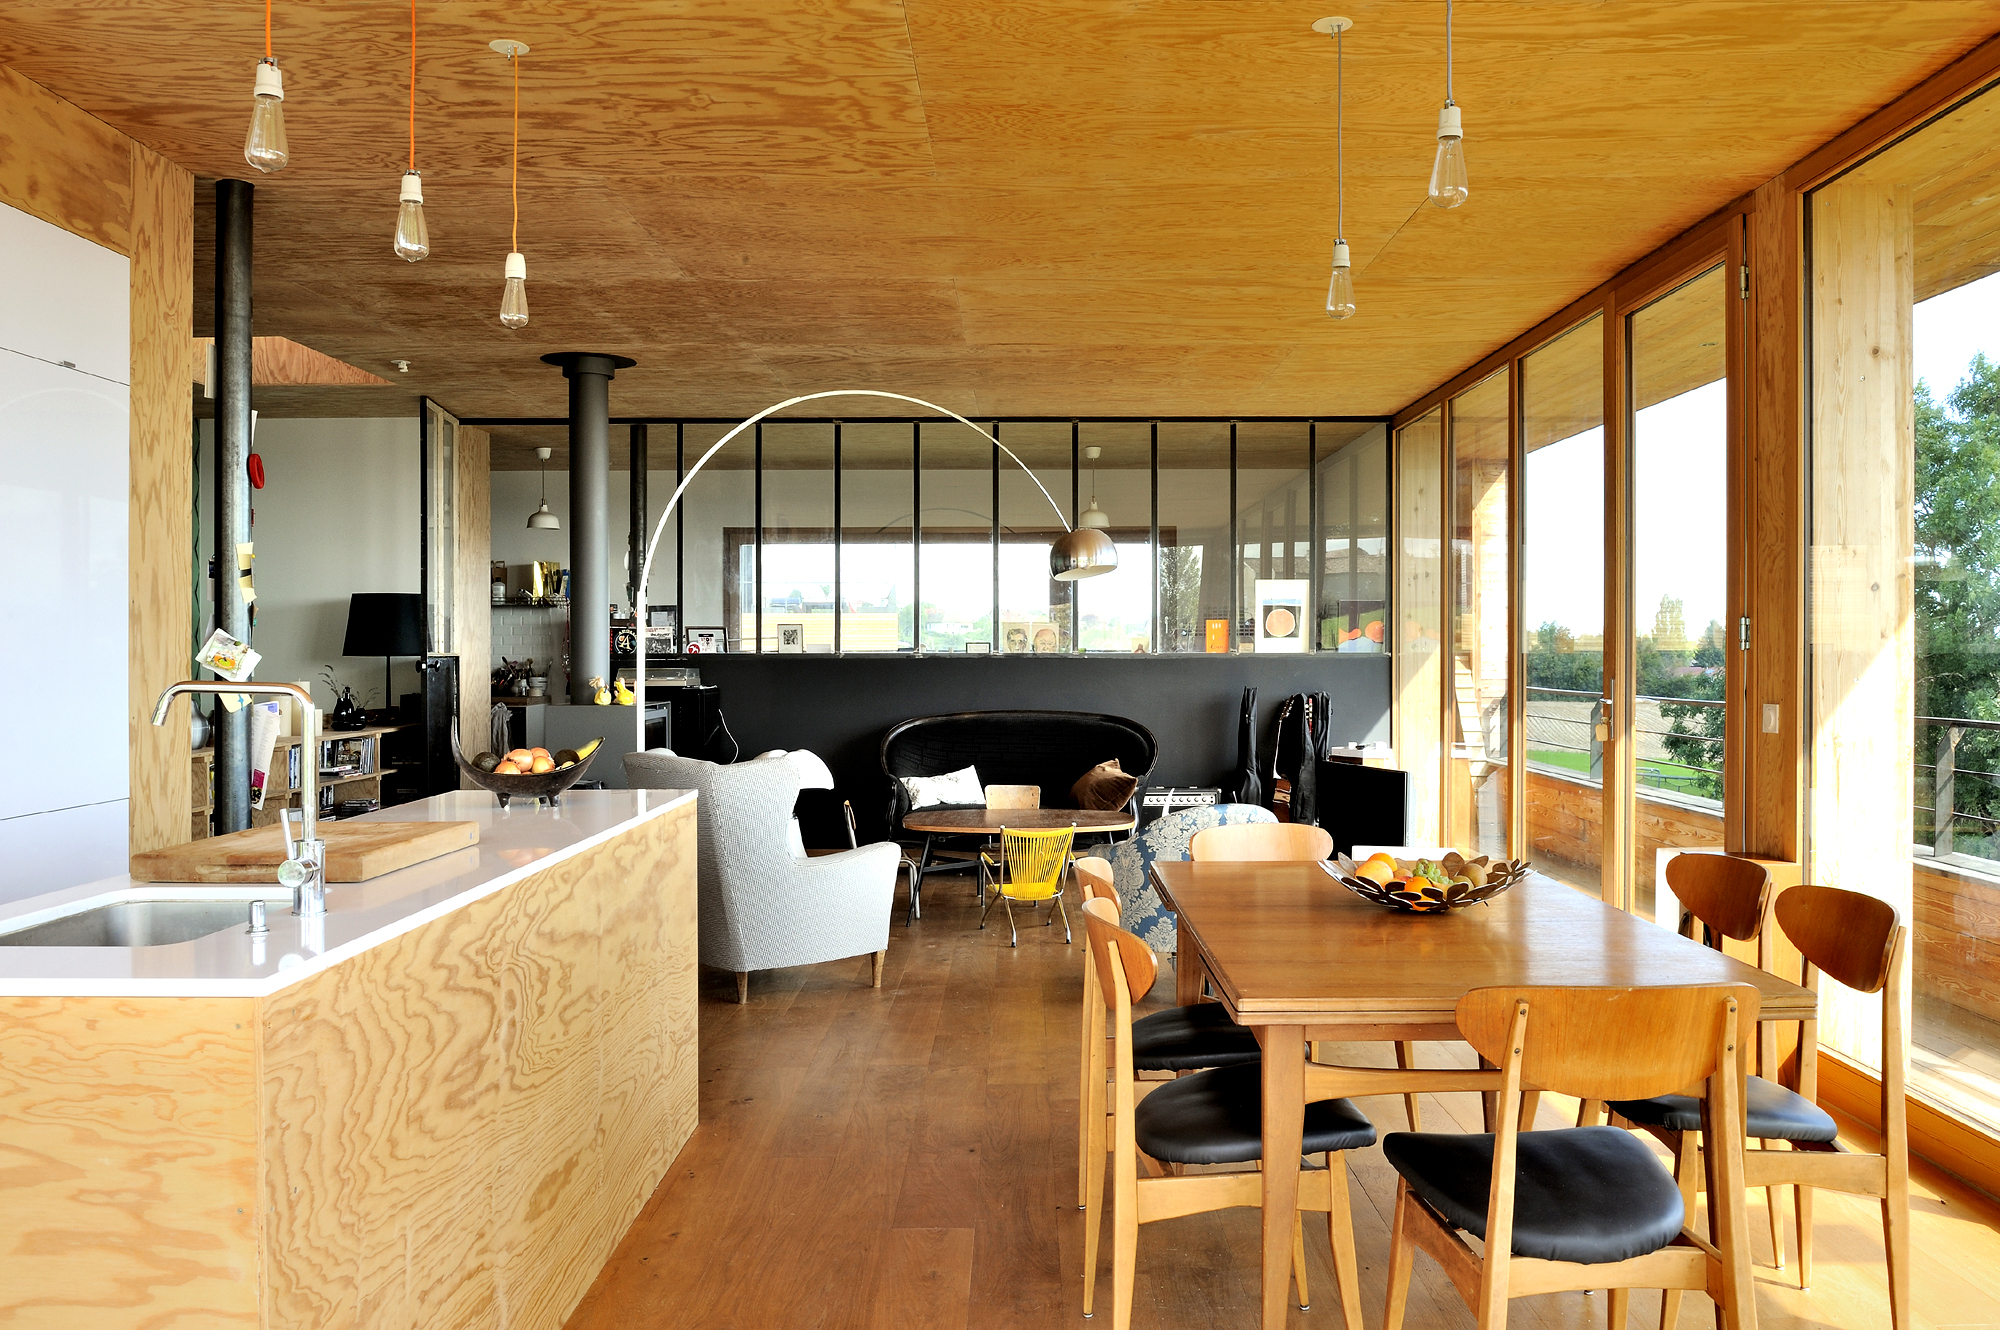 Amenagement interieur maison en bois - Interieur maison contemporaine photos ...